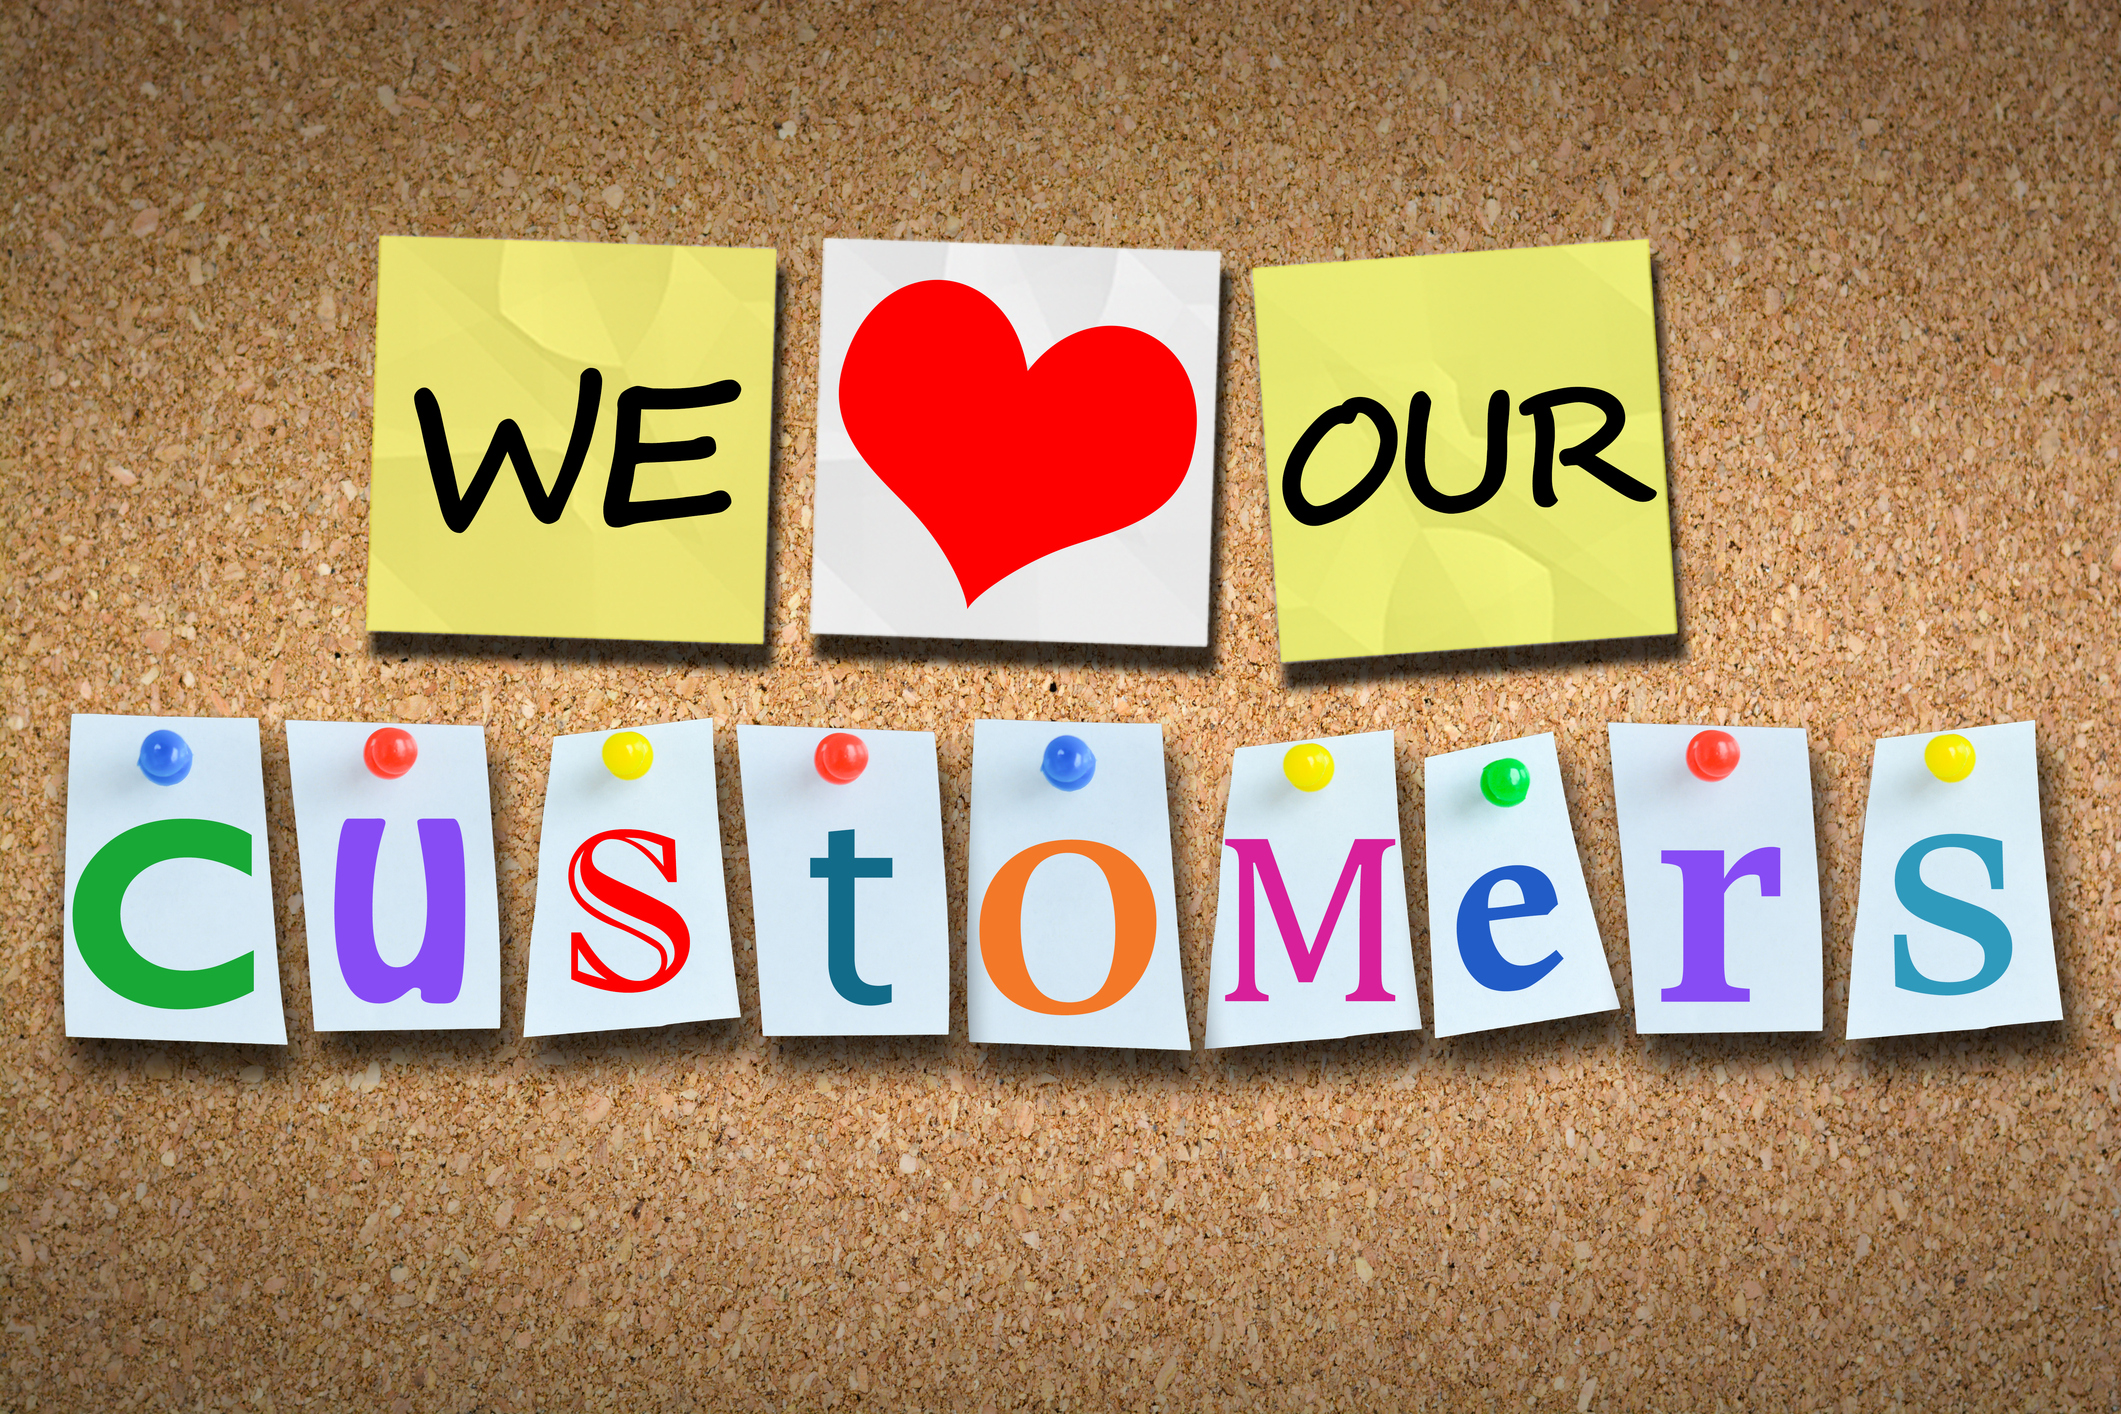 A Top 10 Service - Click here to see what our satisfied customers say about us.